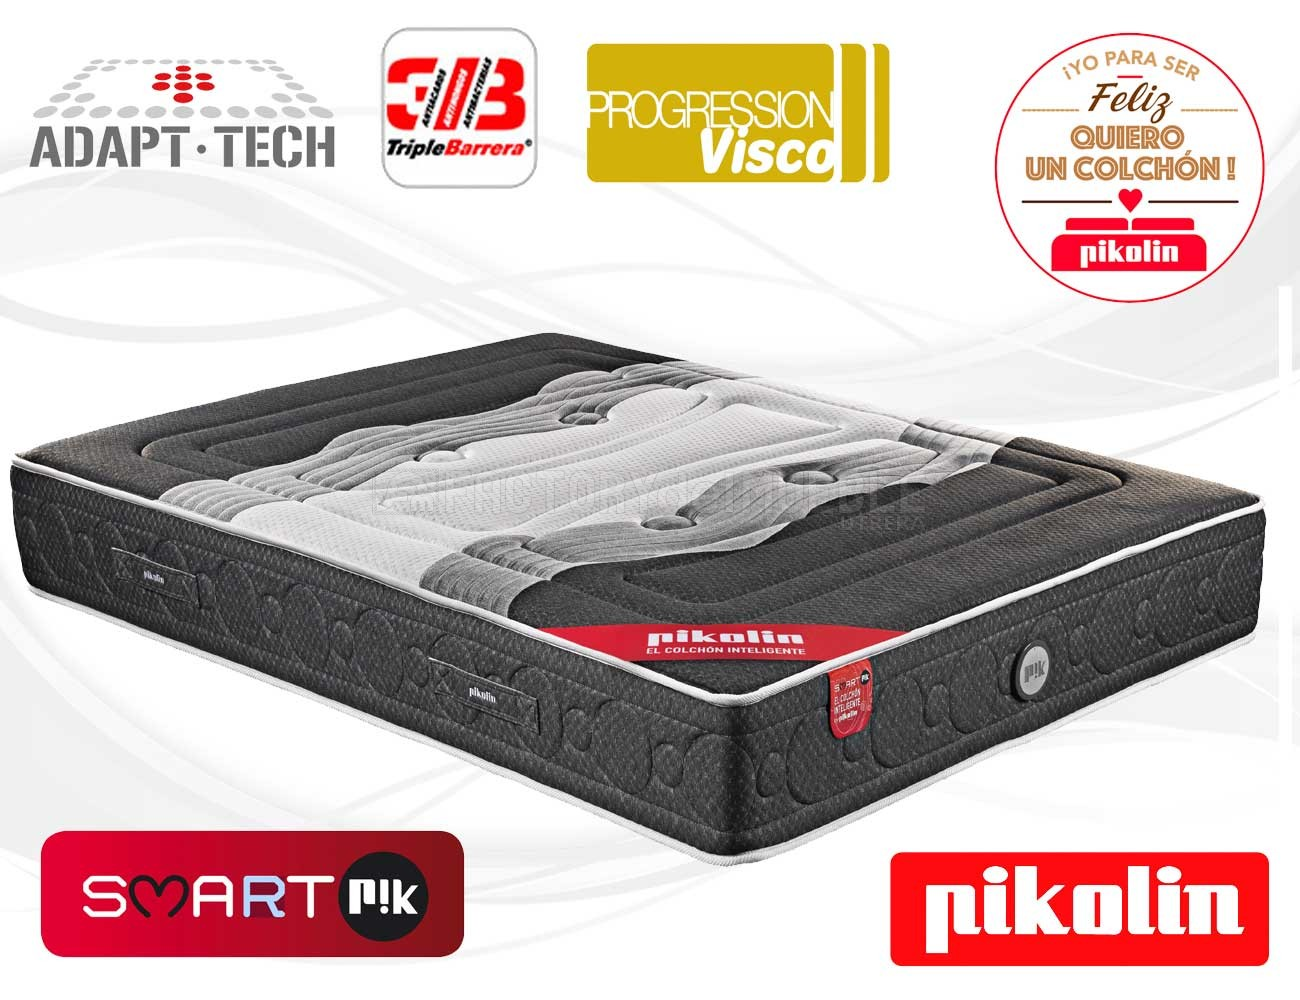 Colchon pikolin smart pik 11239